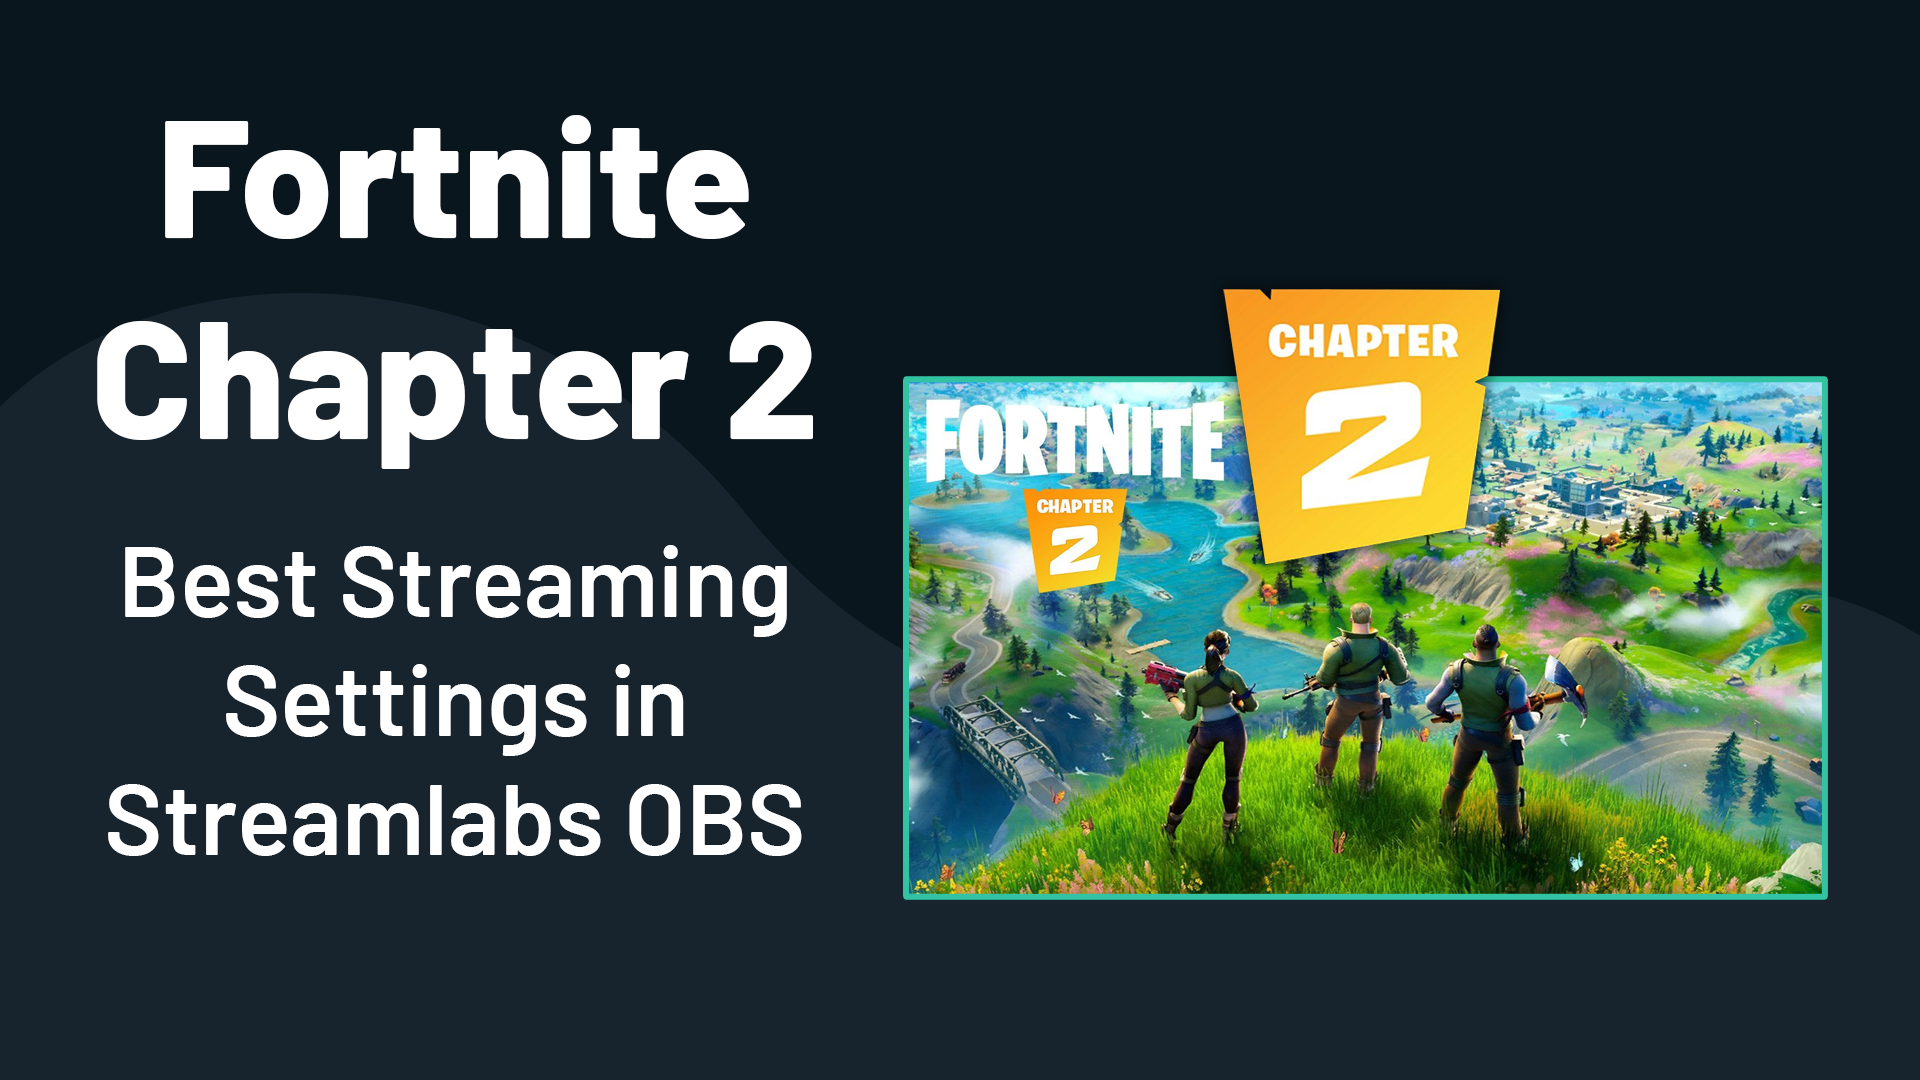 How To Get The Best Streaming Settings For Fortnite Chapter 2